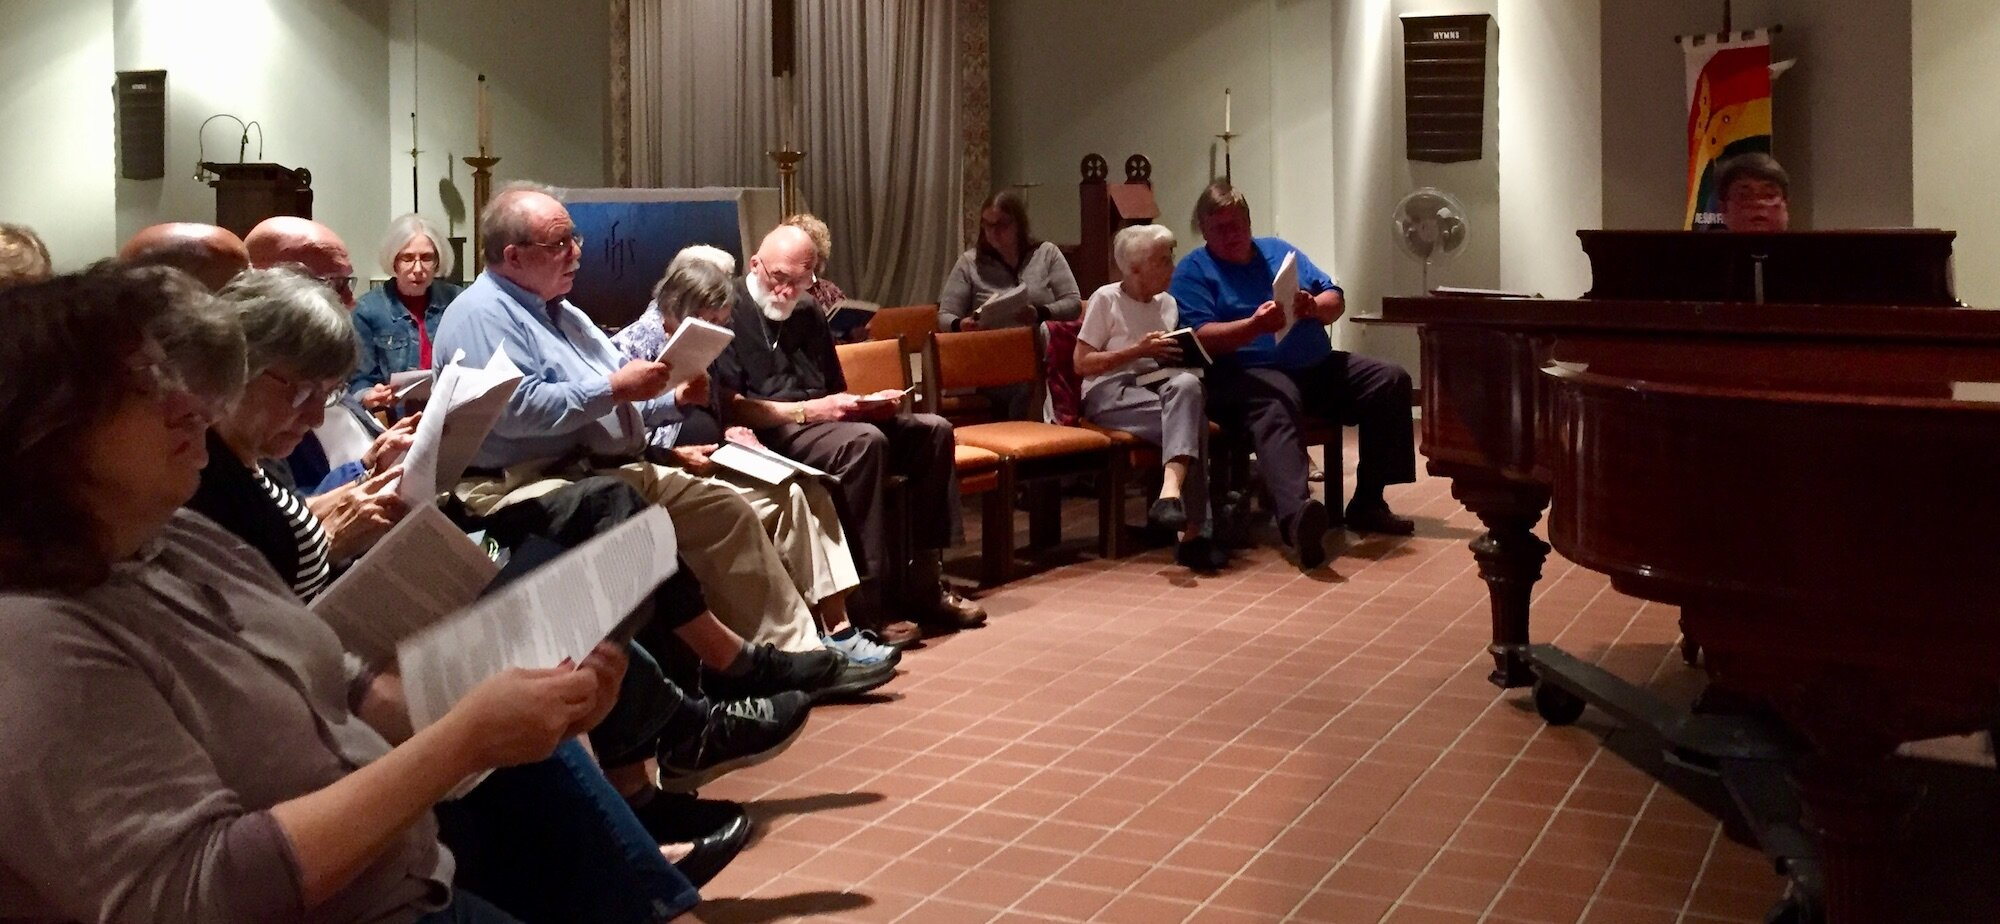 Hymn Sing with Nancy Radloff at the piano